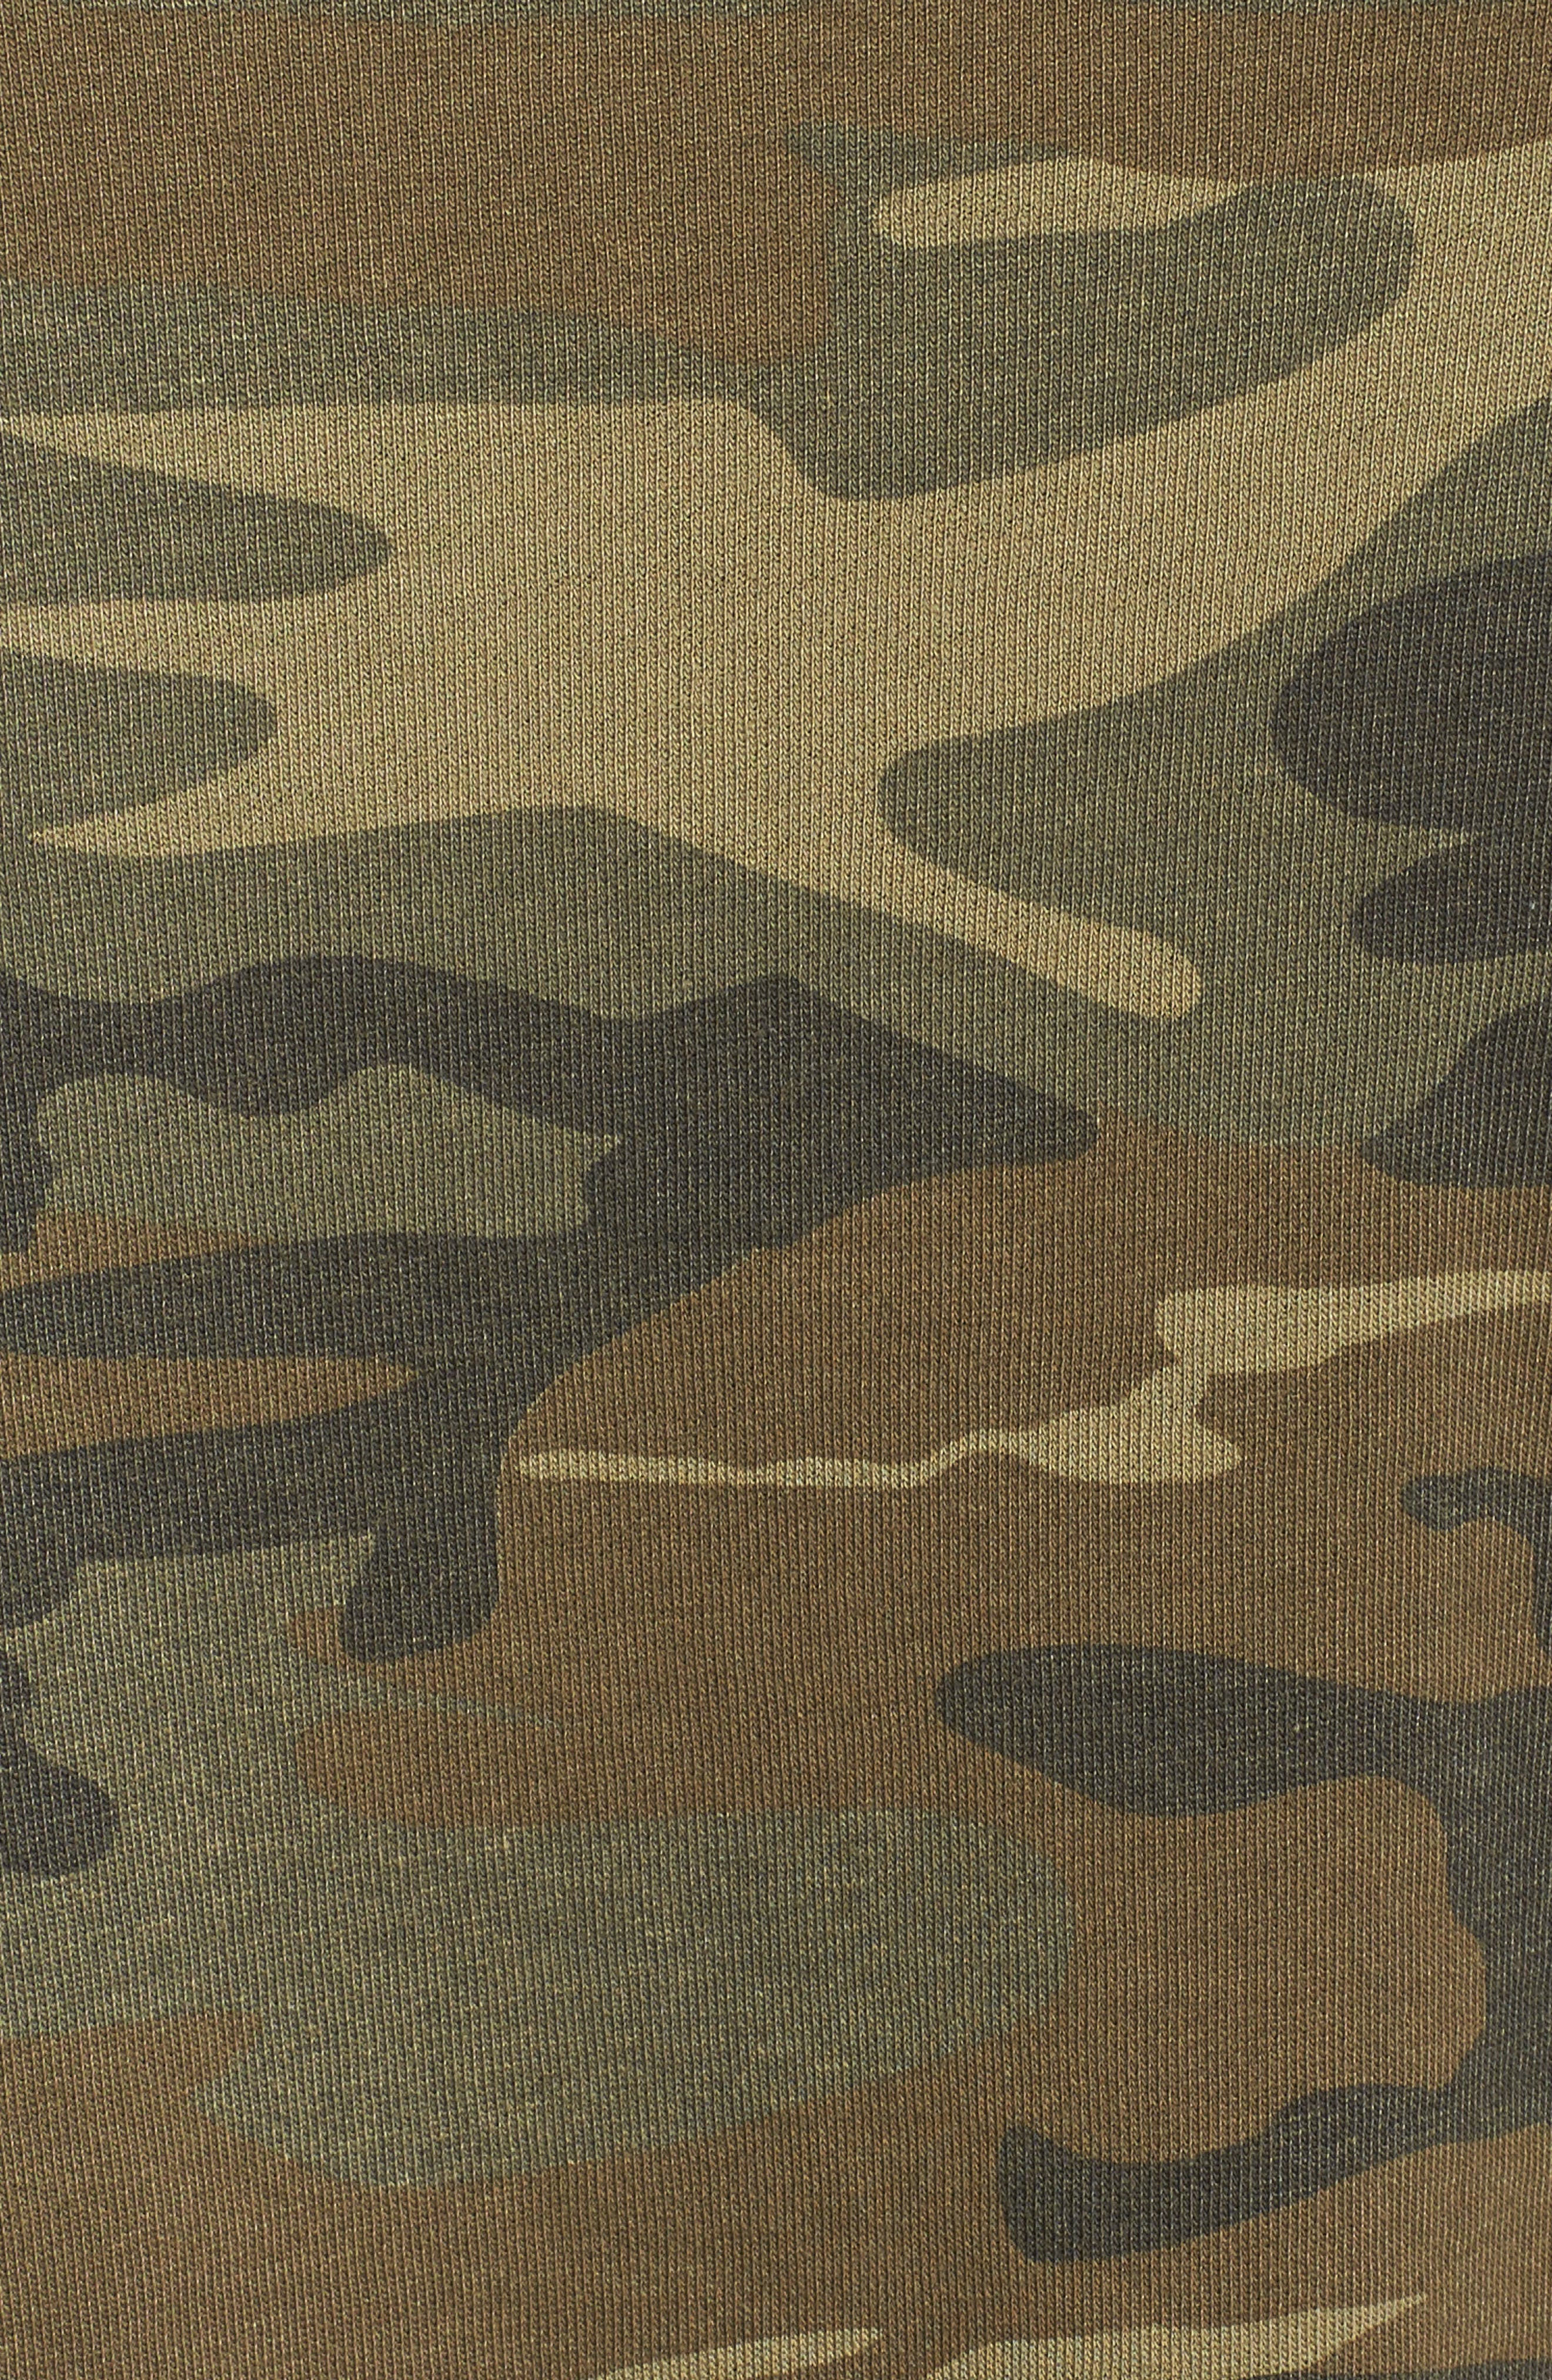 Day Off Hoodie,                             Alternate thumbnail 5, color,                             Camo